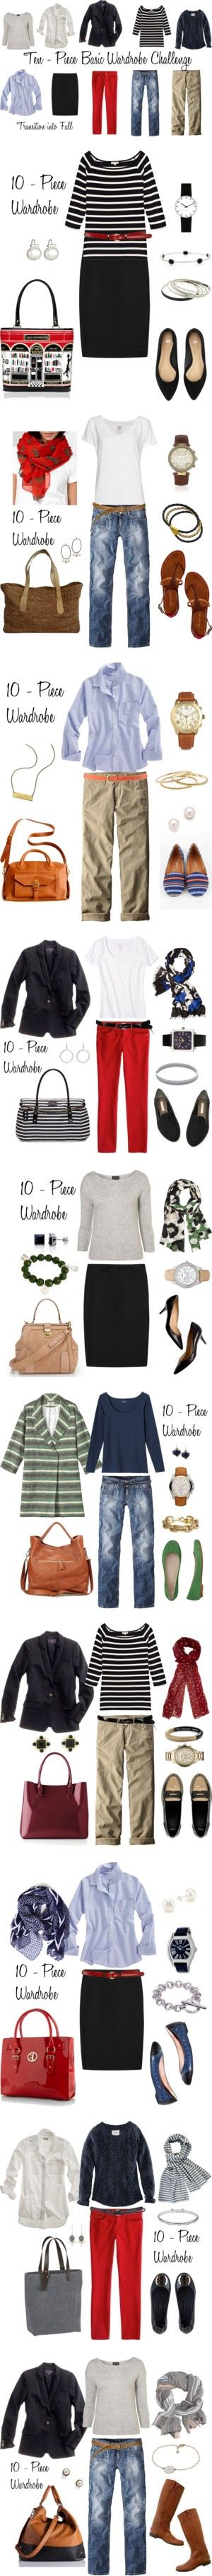 """Looks from the 10 - Piece Wardrobe Challenge"" by bluehydrangea ❤ liked on Polyvore"